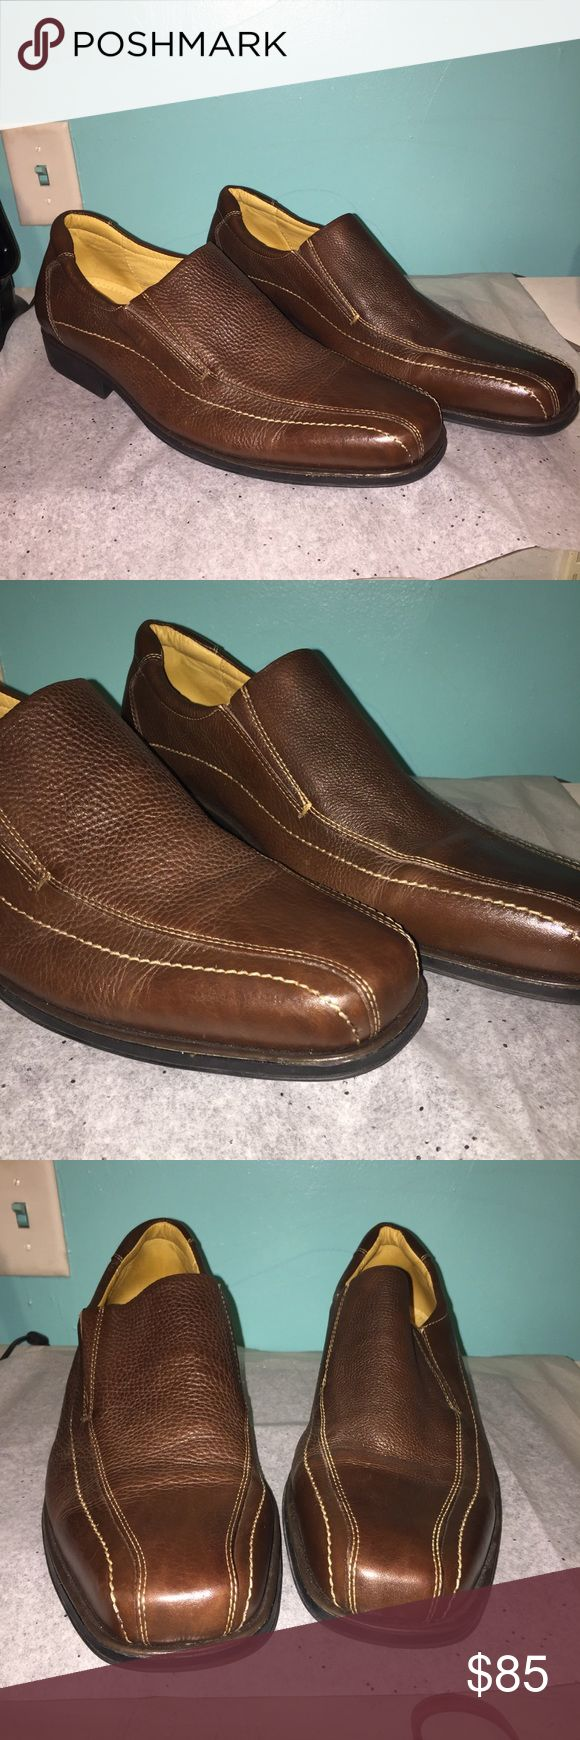 Sandro Moscoloni shoes Brown in color, perfect condition!! The insole is super soft and squishy. Amazing quality!! Sandro Moscoloni Shoes Loafers & Slip-Ons